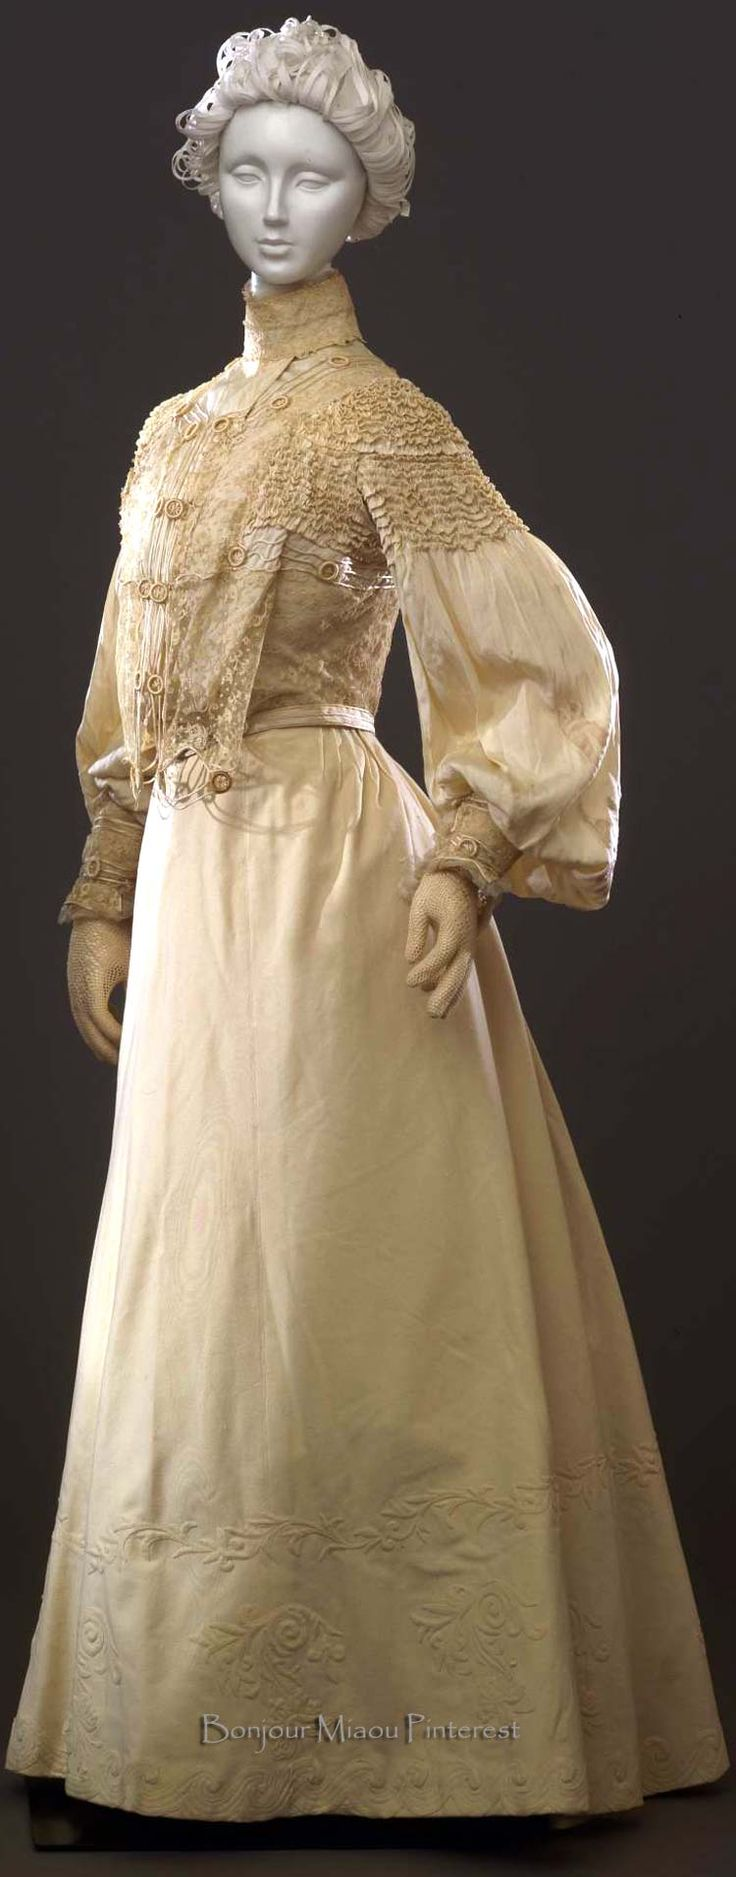 Dress ca. 1903–04. Two pieces; ivory taffeta with mechanical lace jabot, soutache, and organza ruffles. Photo: Gabinetto fotografico SBAS, Antonio Quattrone. Costume Gallery of the Pitti Palace via Europeana Fashion